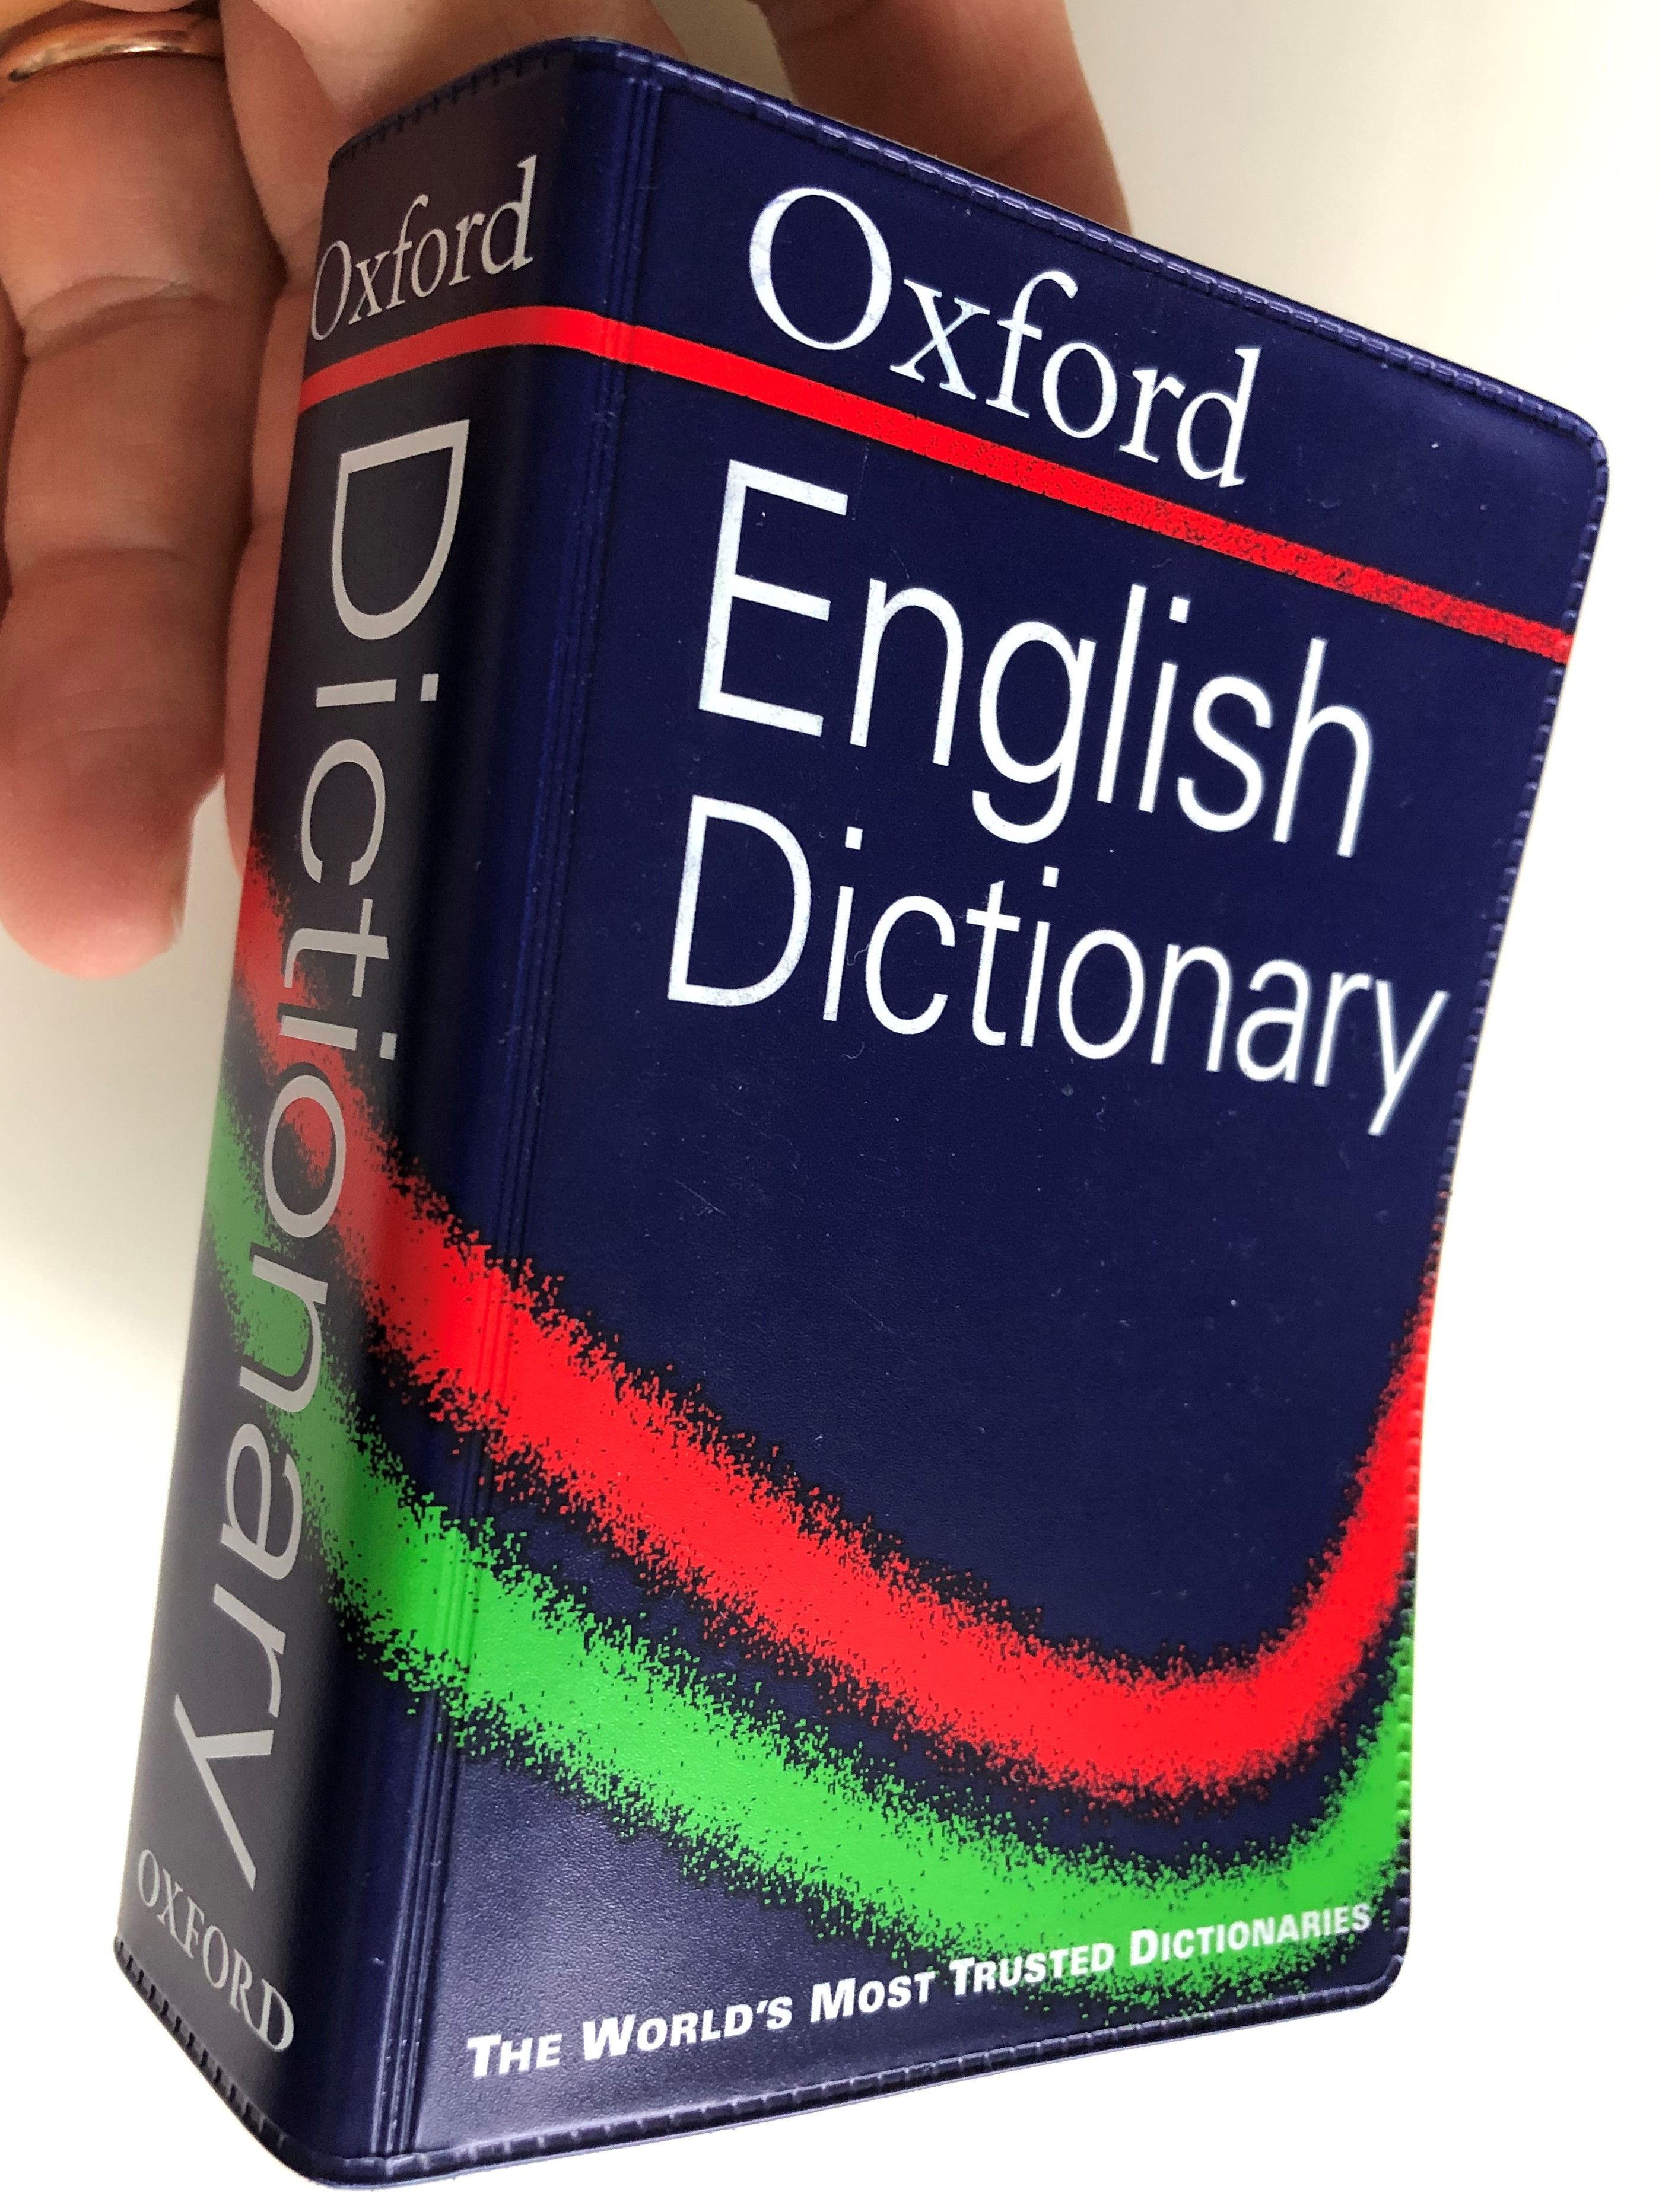 oxford-english-dictionary-the-world-s-most-trusted-dictionaries-essential-reliable-practical-oxford-university-press-1-.jpg